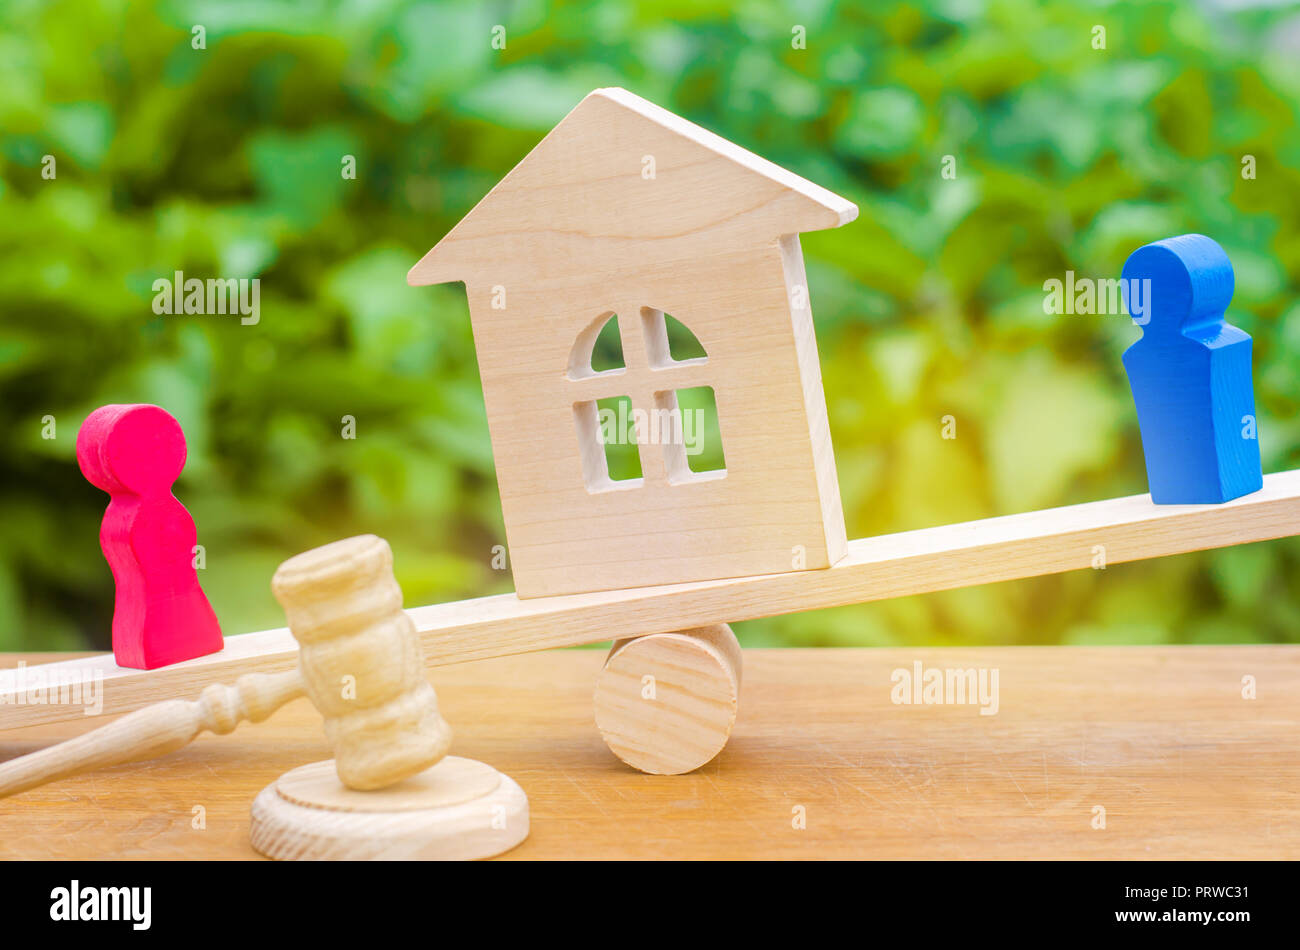 division of property by legal means. clarification of ownership of the house. wooden figures of people. man and woman are standing on the scales. tria - Stock Image